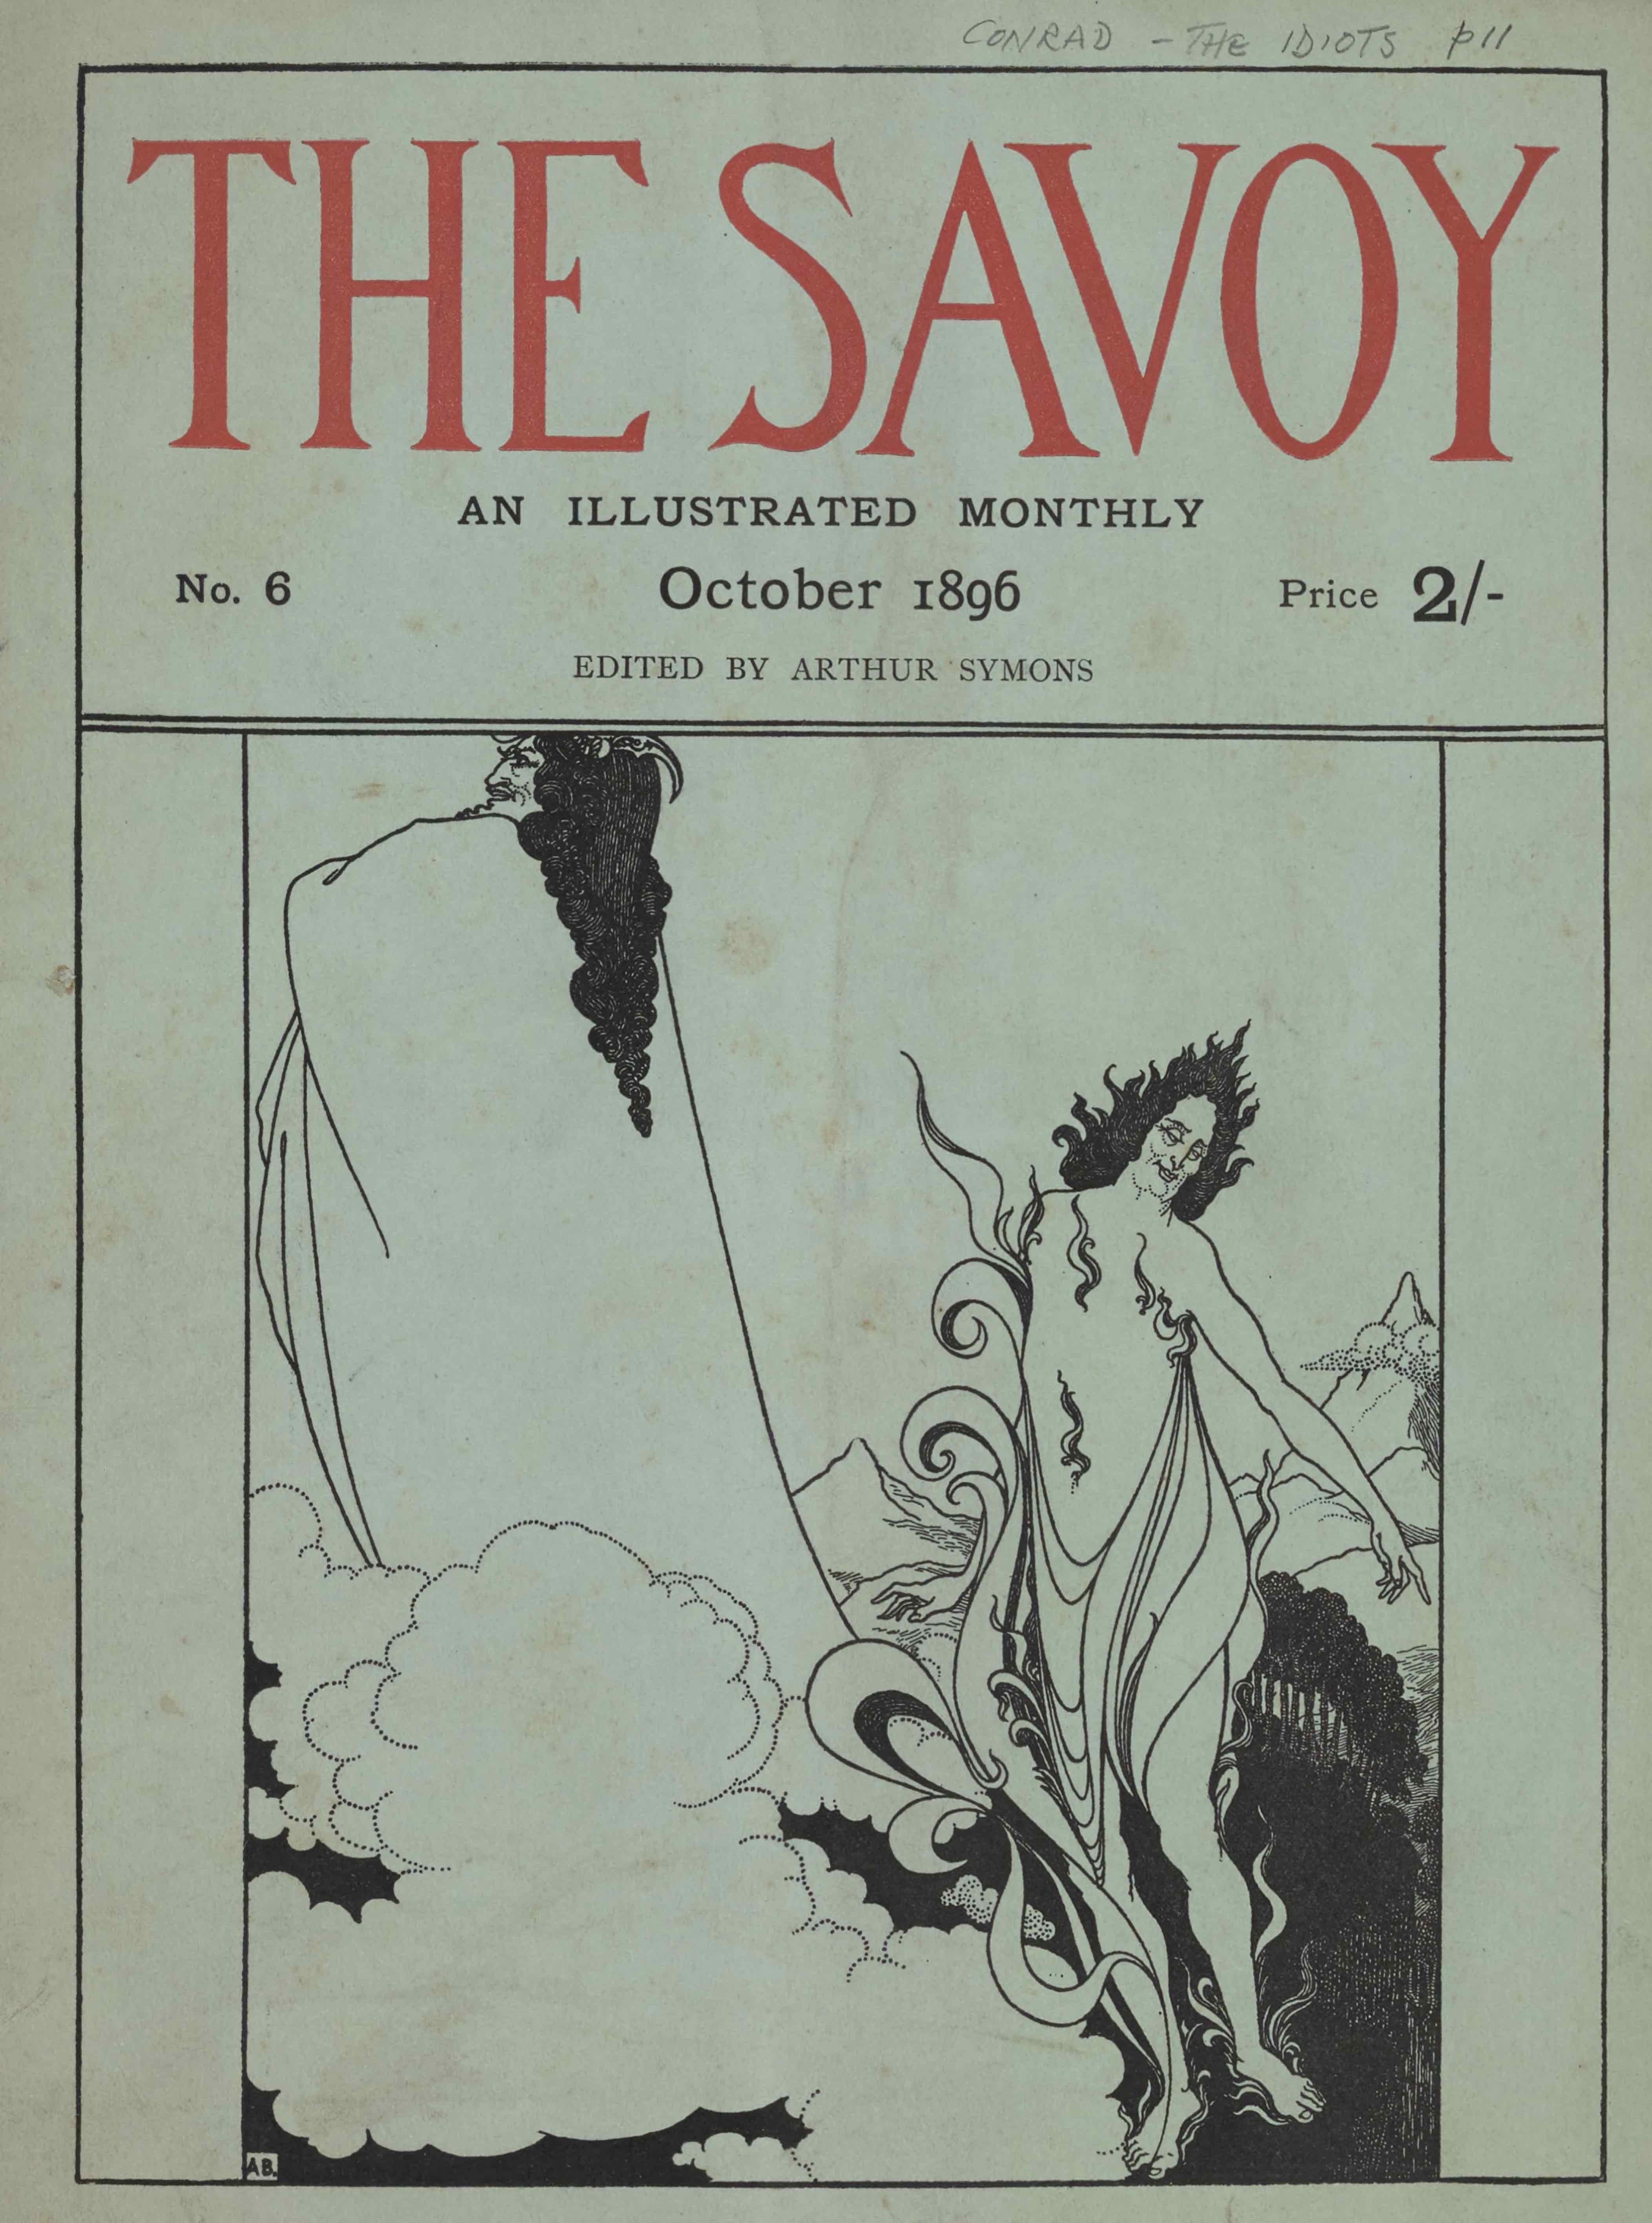 """The cover design, in portrait orientation, combines letterpress and a line-block reproduction of a pen-and-ink design by Aubrey Beardsley. The publishing information occupies the top third of the page, followed below by artwork. The page is divided into boxes. At the top, there is a rectangle taking up one-third of the page. Inside the rectangle is the text: """"THE SAVOY"""" [caps] in display type, comprising the top two-thirds of the box in height. Below that text, and centered, set in smaller font, appears: """"AN ILLUSTRATED MONTHLY"""" [caps]. In the line below that there is small text aligned to the left side that says: """"No. 6"""". In the same line, centred, is the text: """"October 1896"""". In the same line, right aligned, there is the text: """"Price 2/-"""". One line below and centered the letterpress reads: """"EDITED BY ARTHUR SYMONS"""" [caps]. The artwork below is of two supernatural figures floating above a landscape; they appear to be characters from Wagner's opera, Das Rheingold, Loge, the god of fire, and Wotan, king of the gods (compare Savoy volume 2 pa 193). .The supernatural figure in the foreground is on the right side of the page and takes up about half the framed space in height. Its bare feet rest on the bottom frame of the illustration. It floats just to the right of a cloud that occupies the centre bottom left of the picture frame. It is, facing towards the viewer, with its head turned left and its left arm pointing out to the right edge of the illustration. It is wearing a loose robe: the fabric wraps around its legs and across its midsection, pinned on both sides by the armpits. The robe is made out of draped fabric. Small flames spread across the figure's torso. One larger flame extends from the figure's right foot up to just past its right shoulder. The figure has black hair that is divided into smaller flame--like strands, which come to a point sticking directly up at the crown of its head. To the right behind the figure is a grove of trees, tightly packed and thick"""